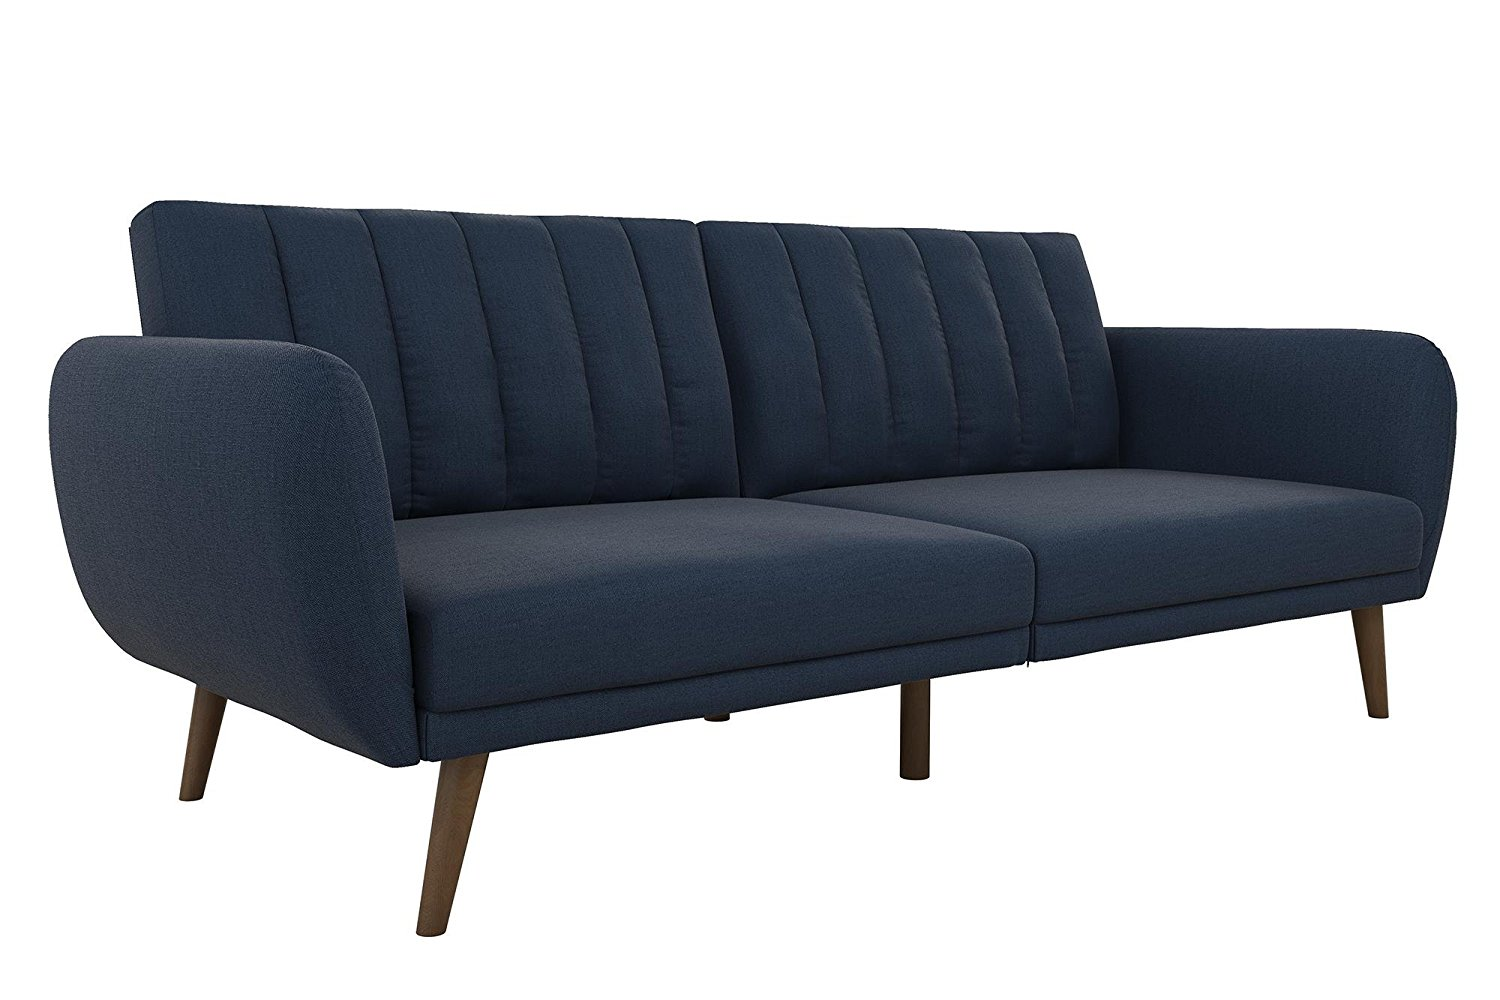 This Novogratz sofa is one of the best apartment sofa you can get.